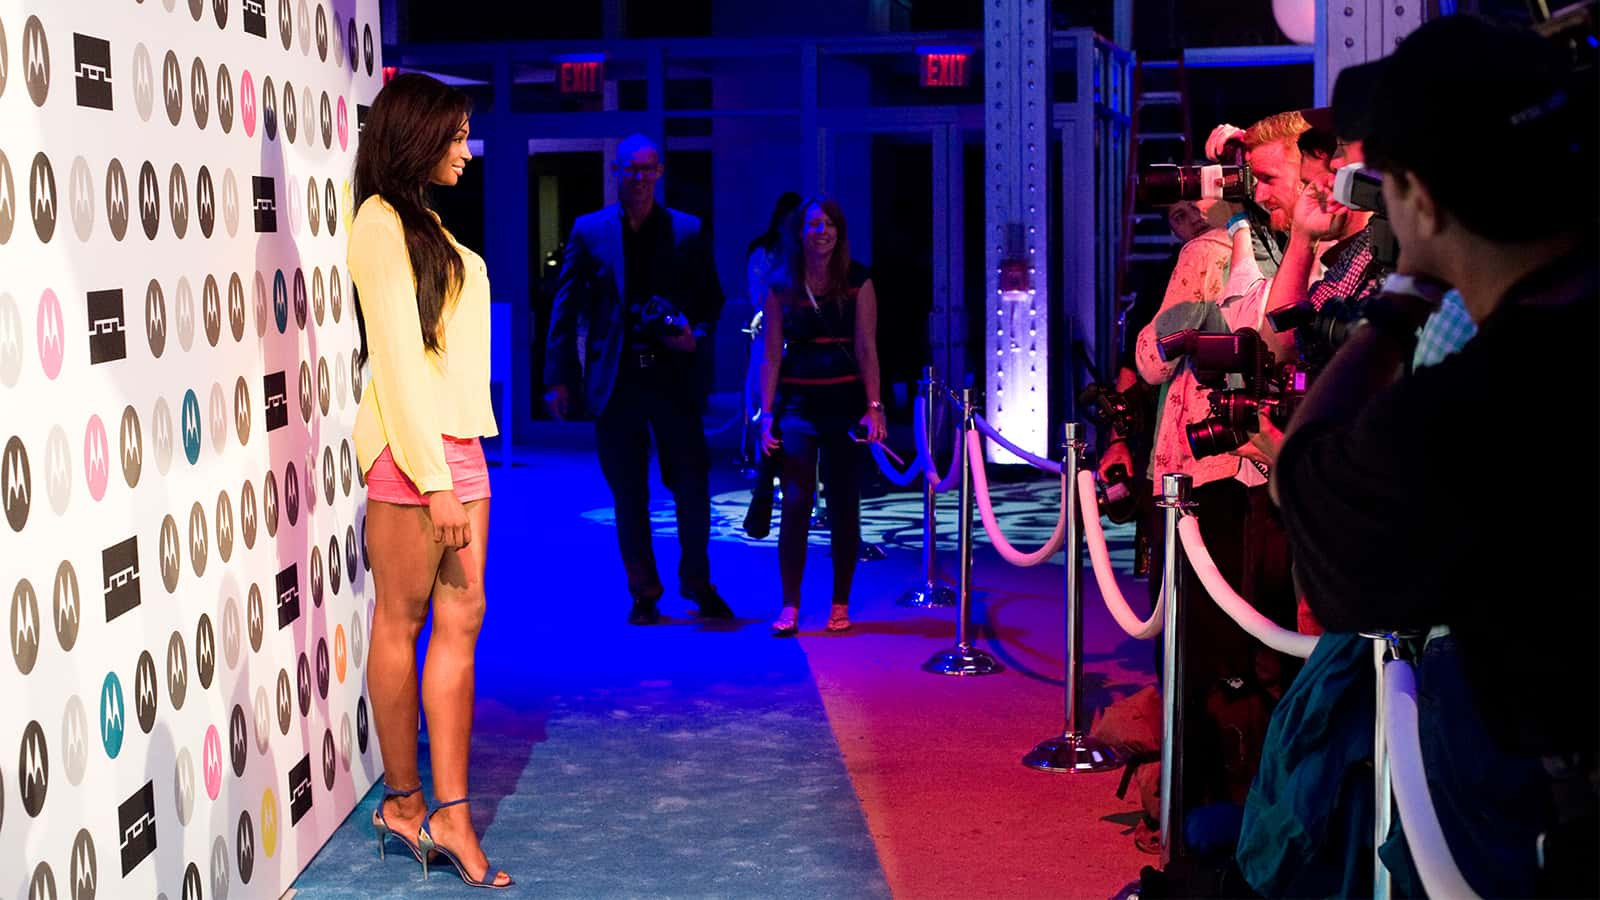 Celebrity sightings at the Moto X product launch at the Tunnel night club in 2013.